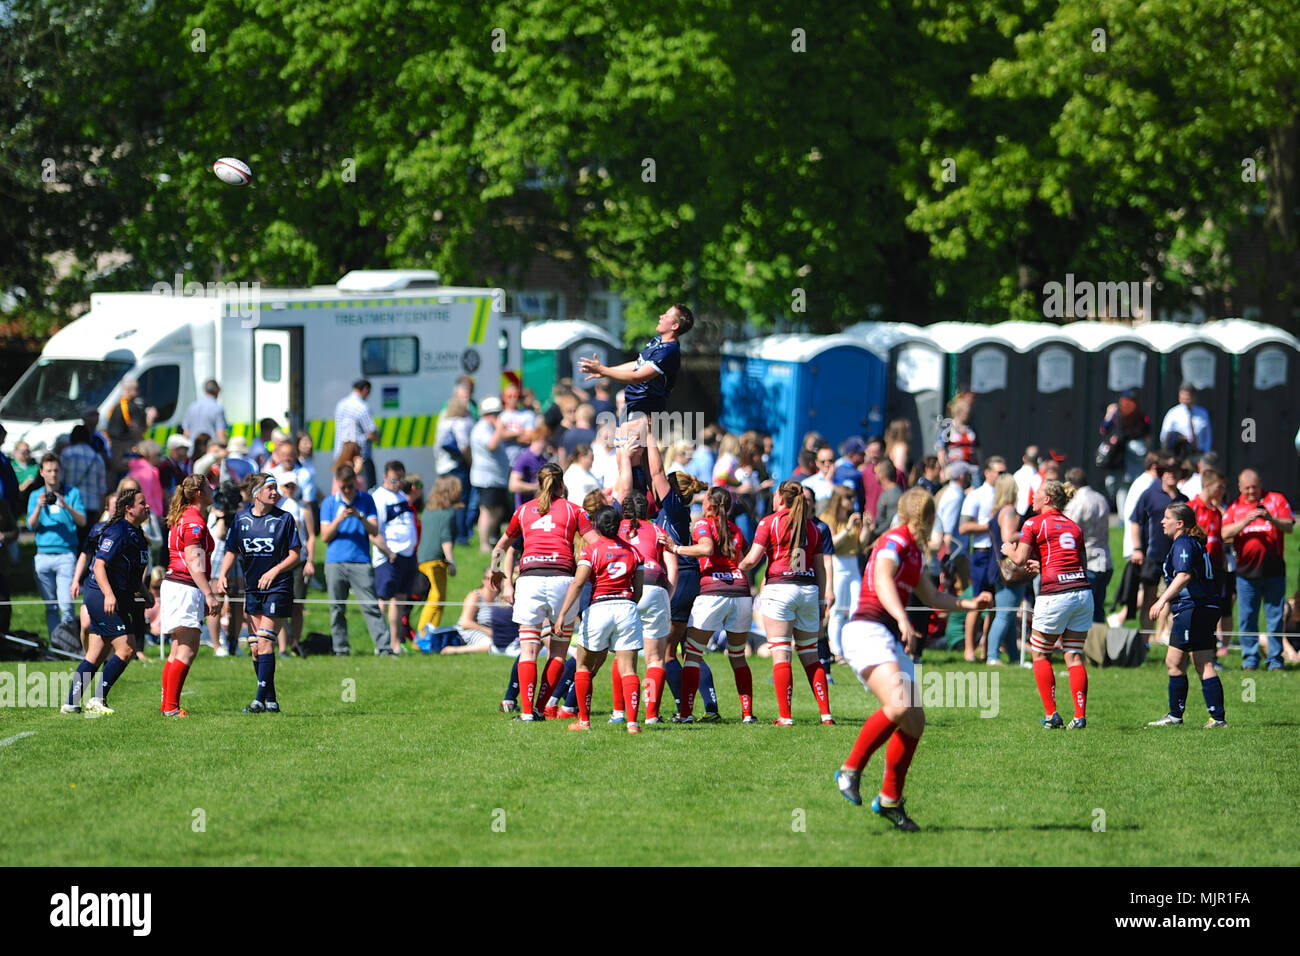 London, UK, 5 May 2018. Lauren Salisbury (LWTR, Royal Navy) being lifted up to catch the ball after a thrown in during the annual women's annual inter-service competition match at Kneller Hall, London, UK.  The match was won by the British Army, 72-3.    In 2003 a Women's Inter-Service Competition was introduced to run alongside the men's competition. The inaugural competition was won by the Arm Credit: Michael Preston/Alamy Live News - Stock Image